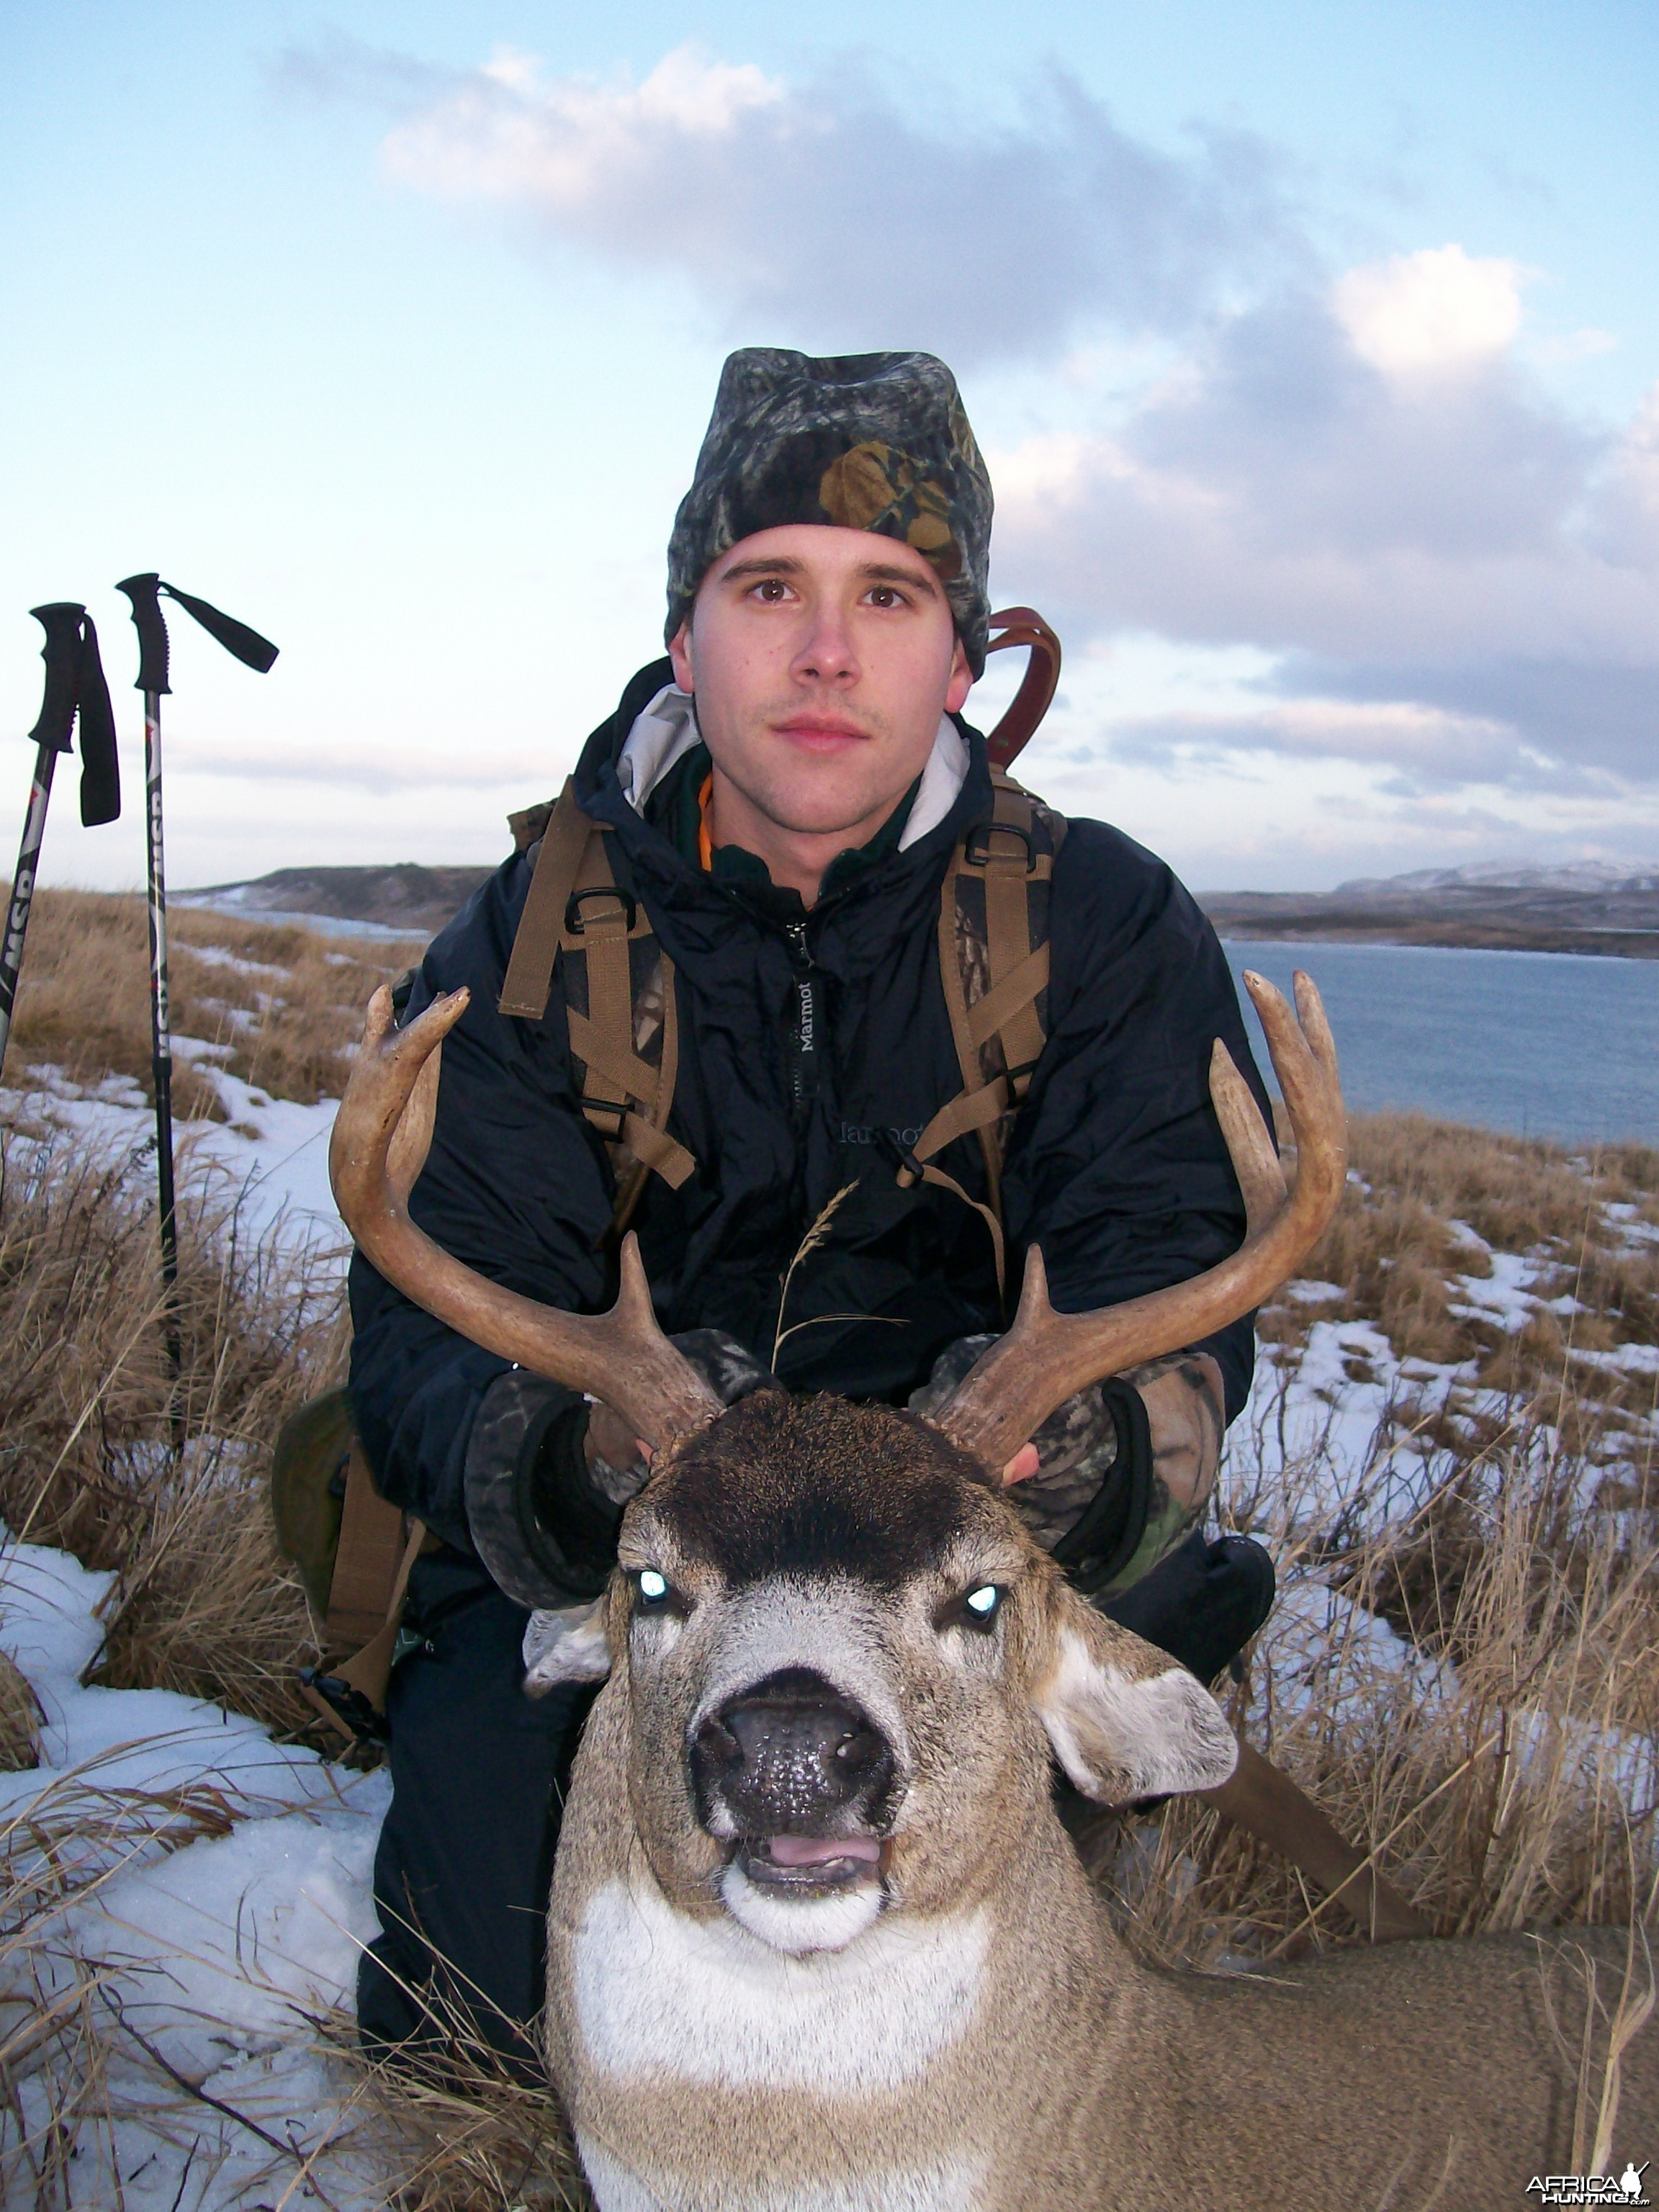 Hunting Sitka Blacktail deer